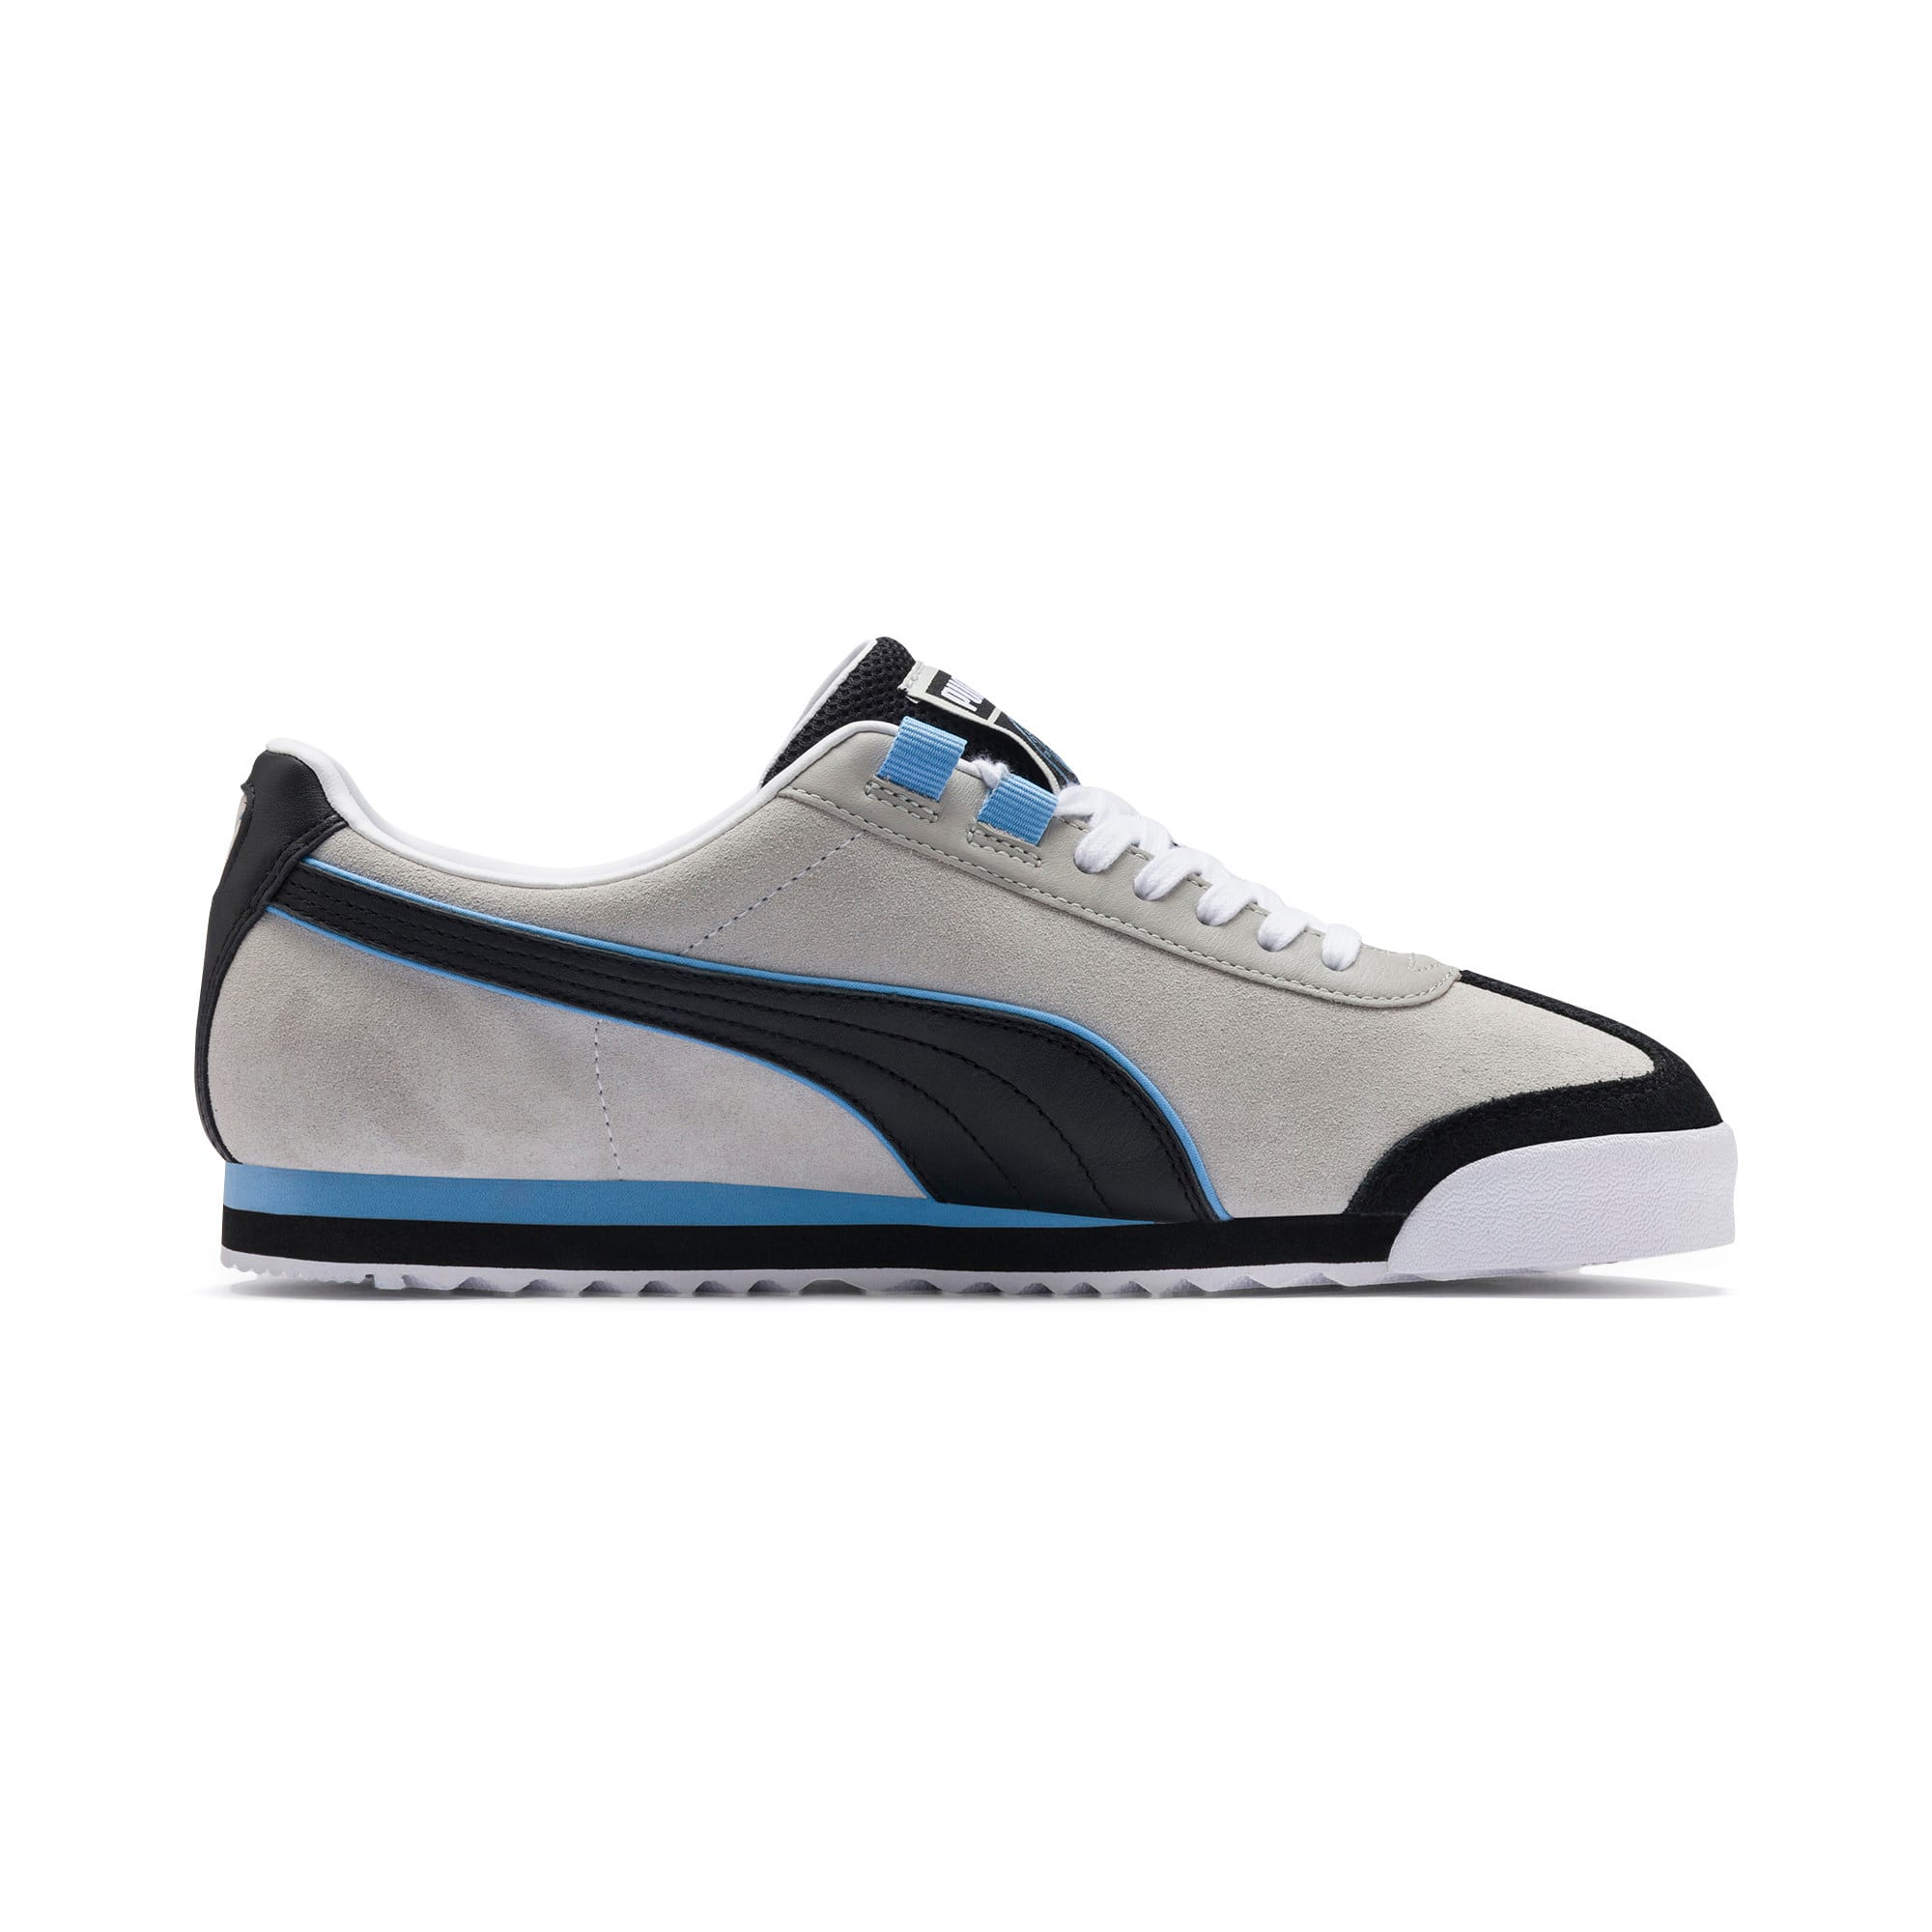 Thumbnail 5 of Roma x Manchester City sportschoenen, Gray Violet-Team Light Blue, medium